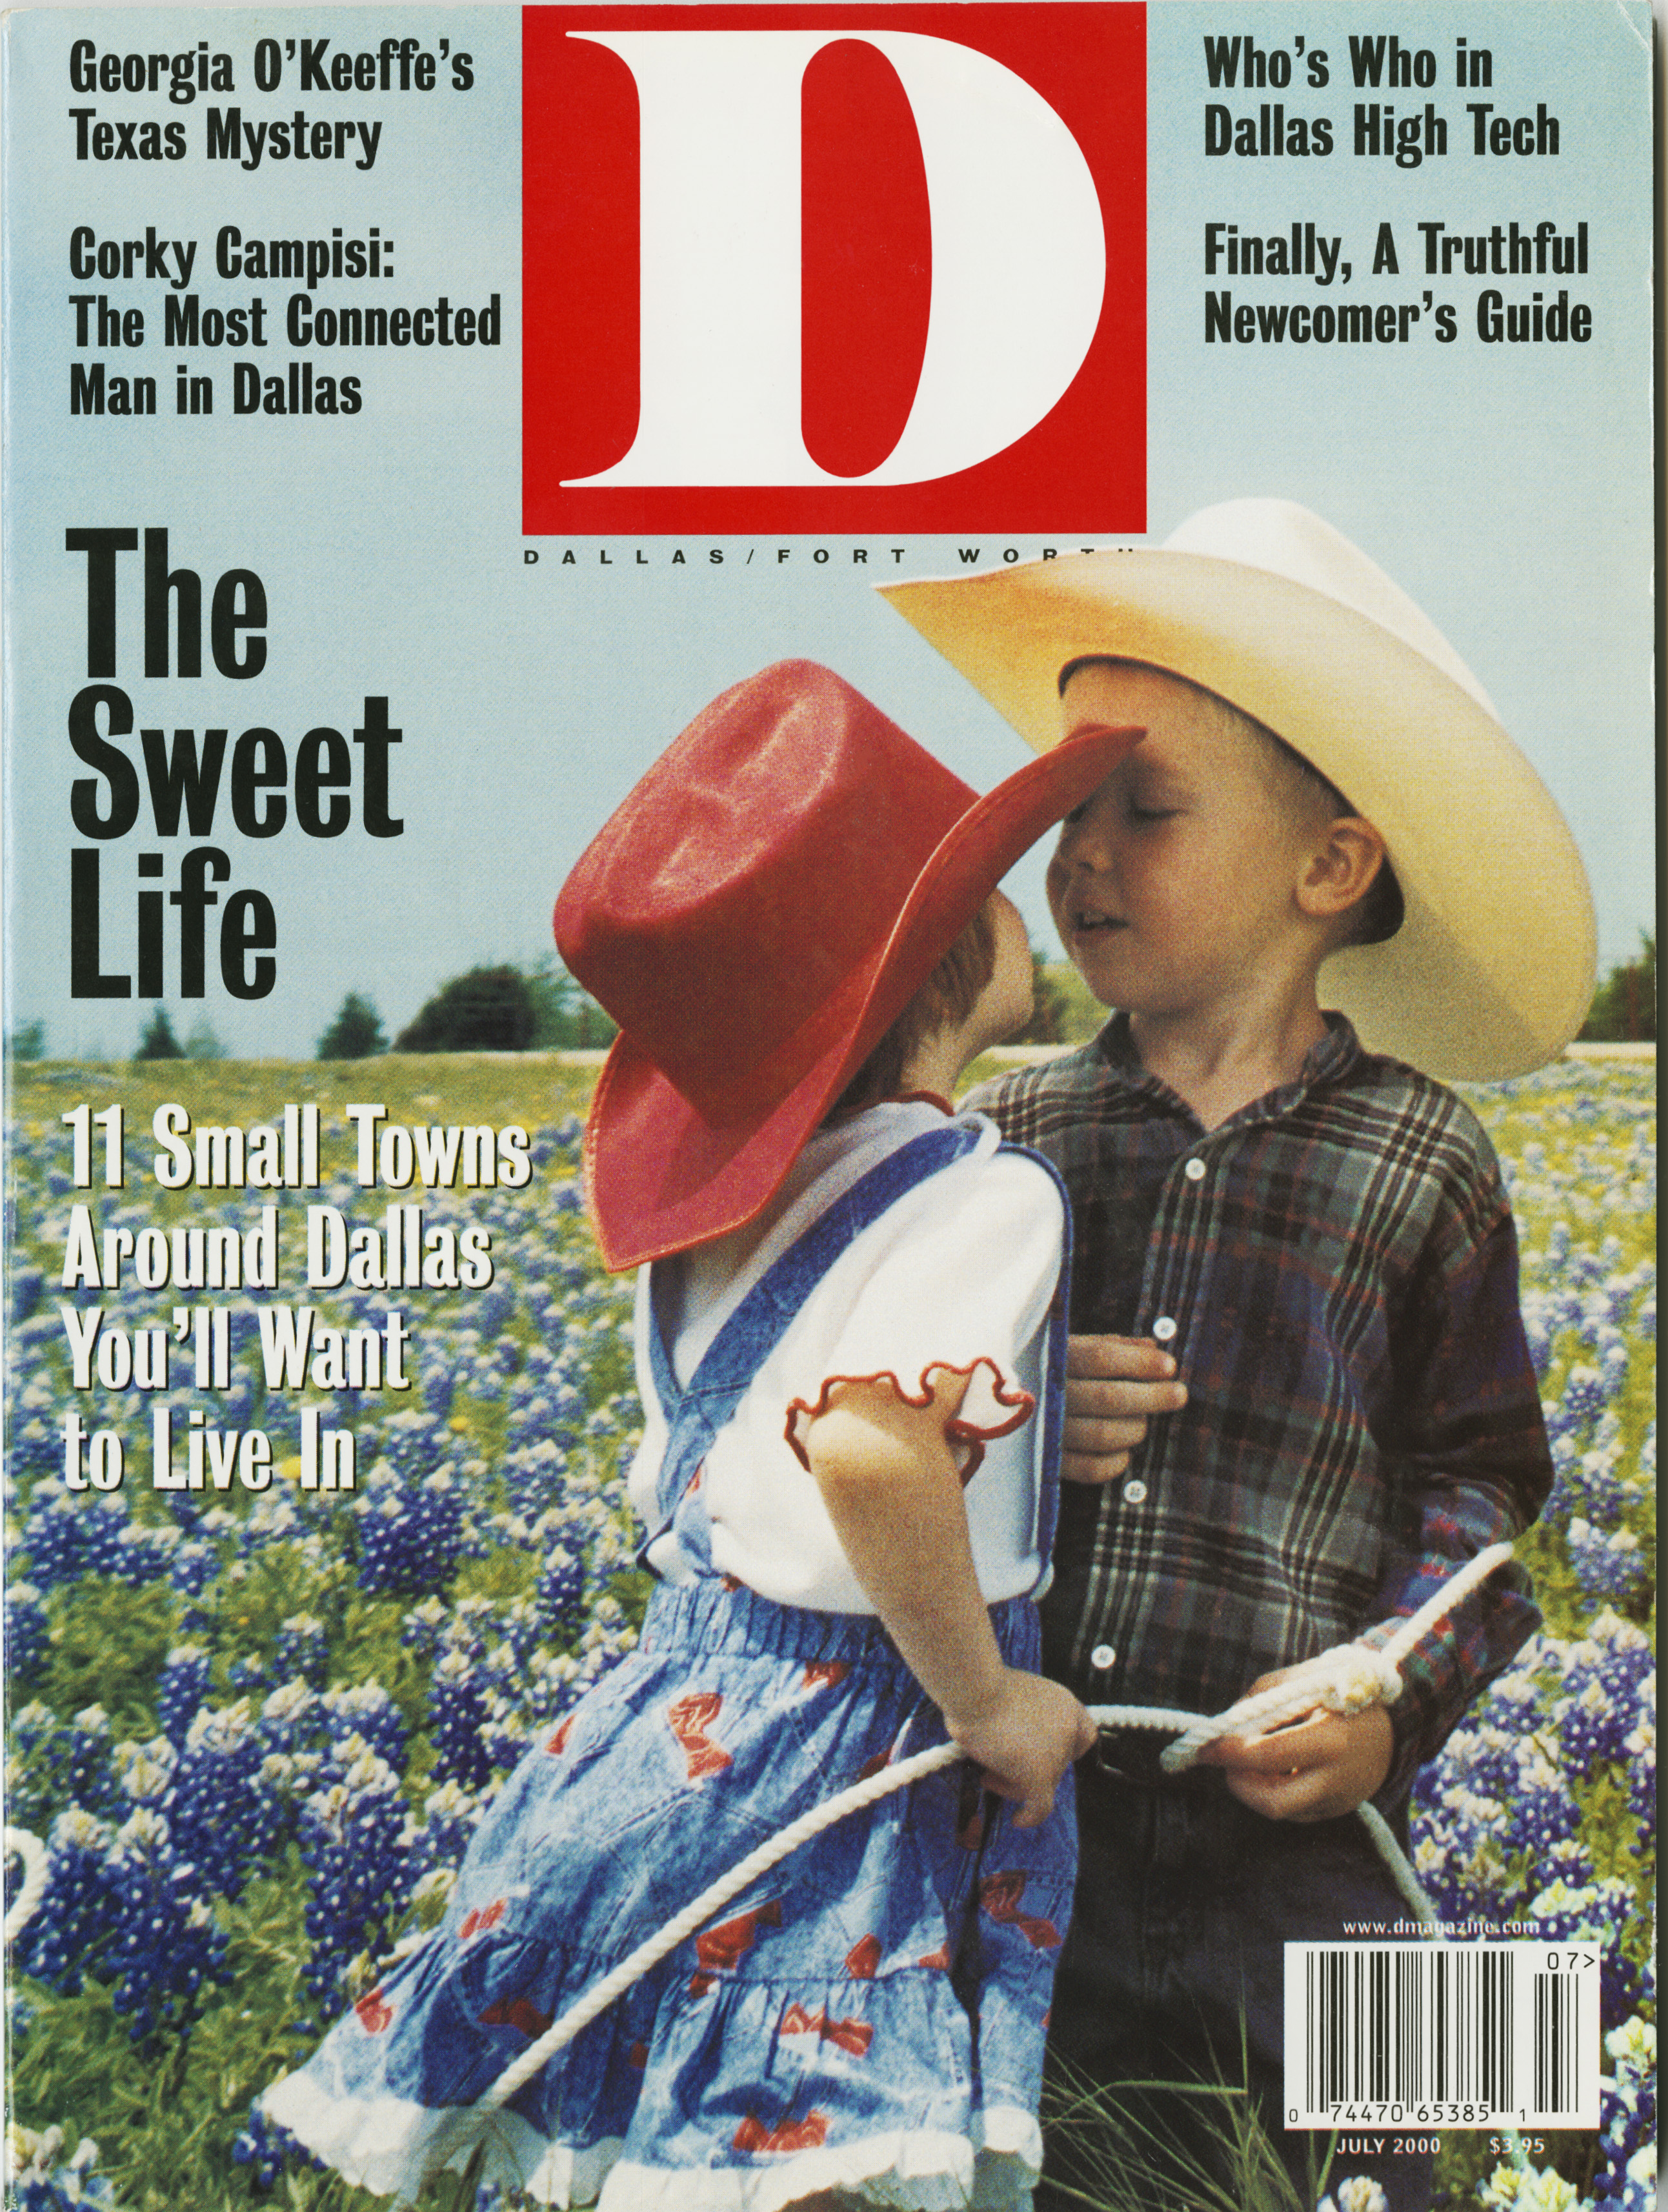 July 2000 cover